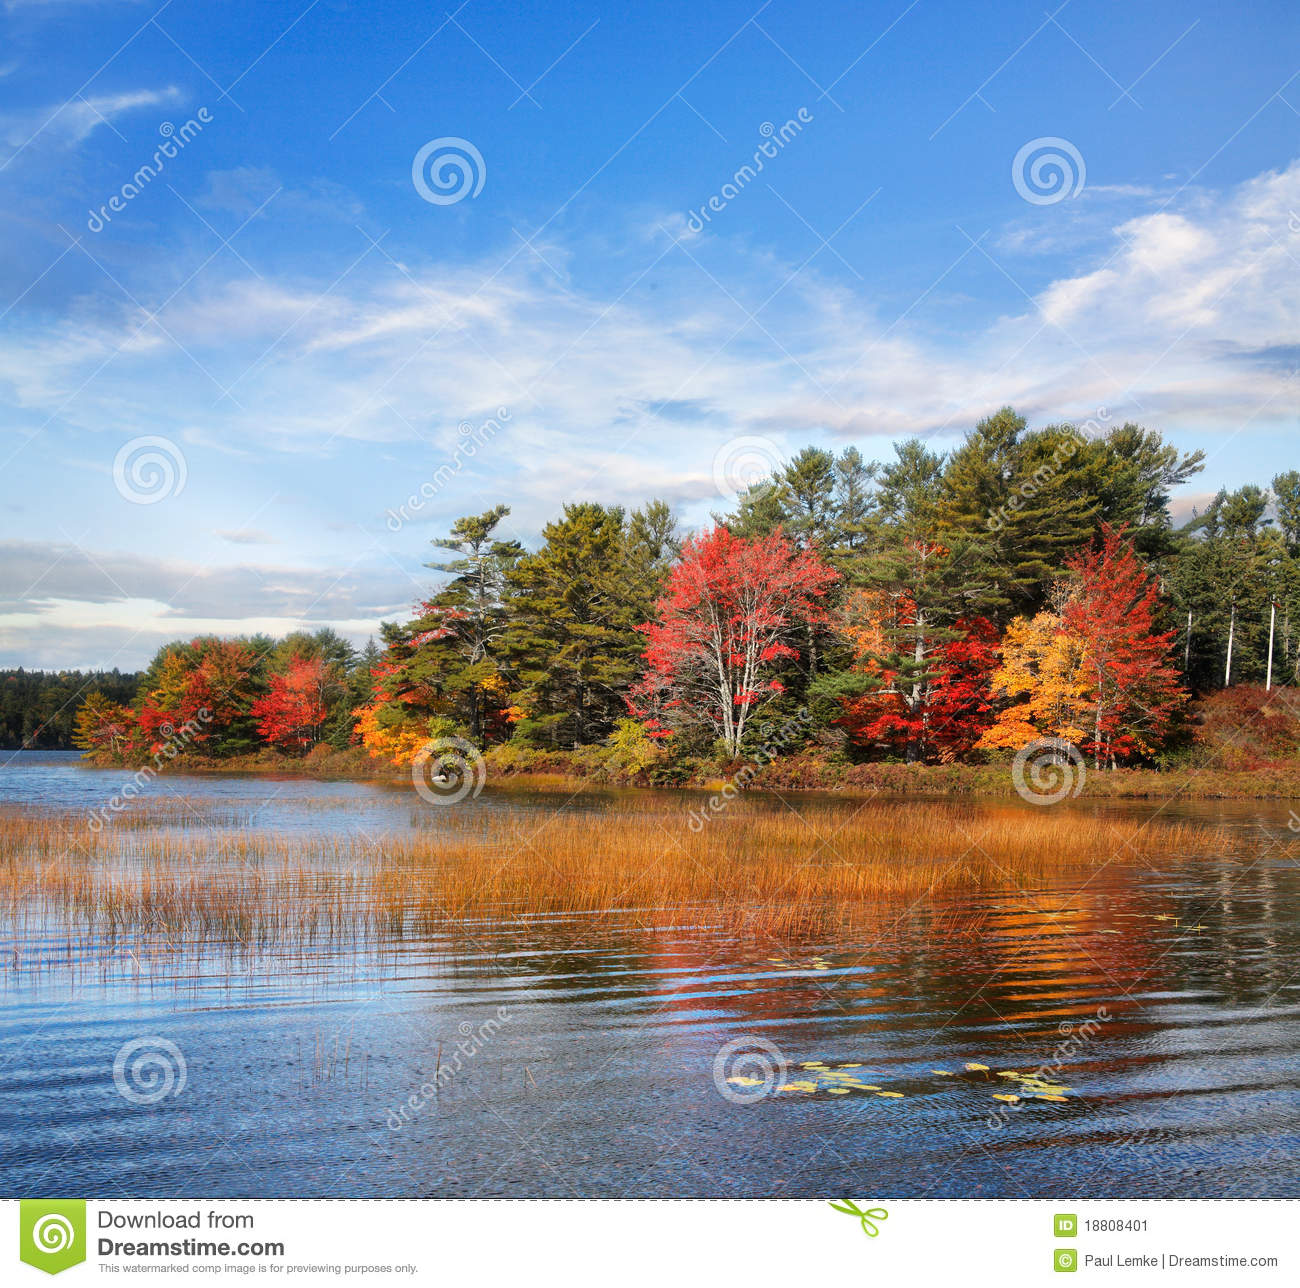 Herbst in Somes Teich